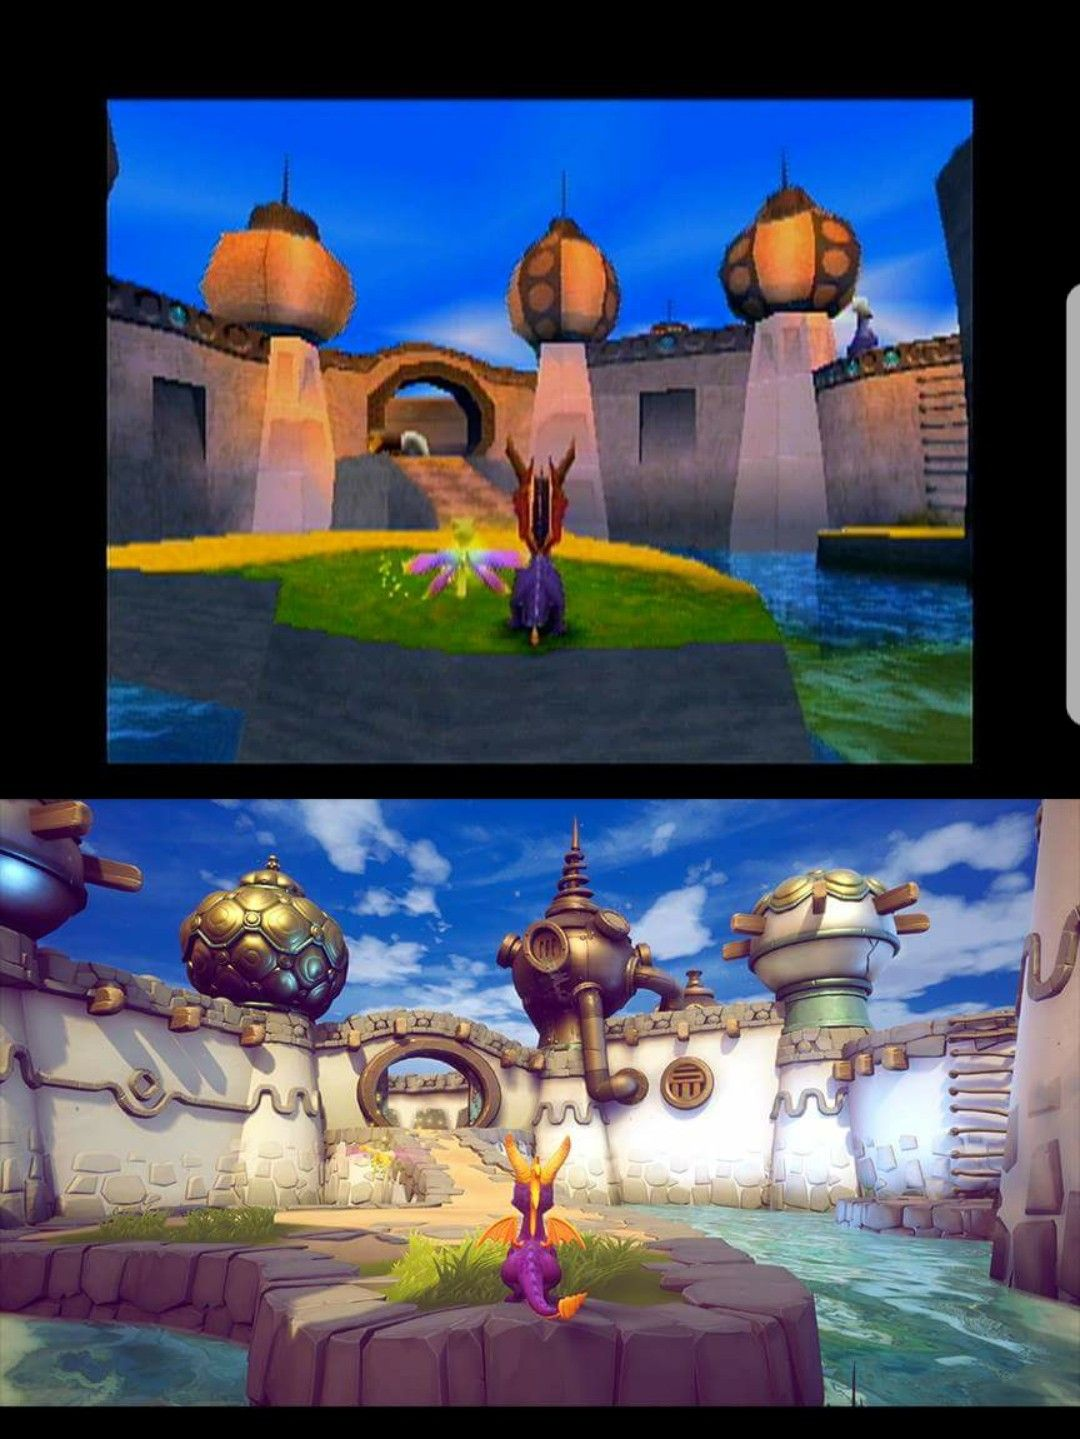 New Spyro Reignited Trilogy Screenshots and drawings